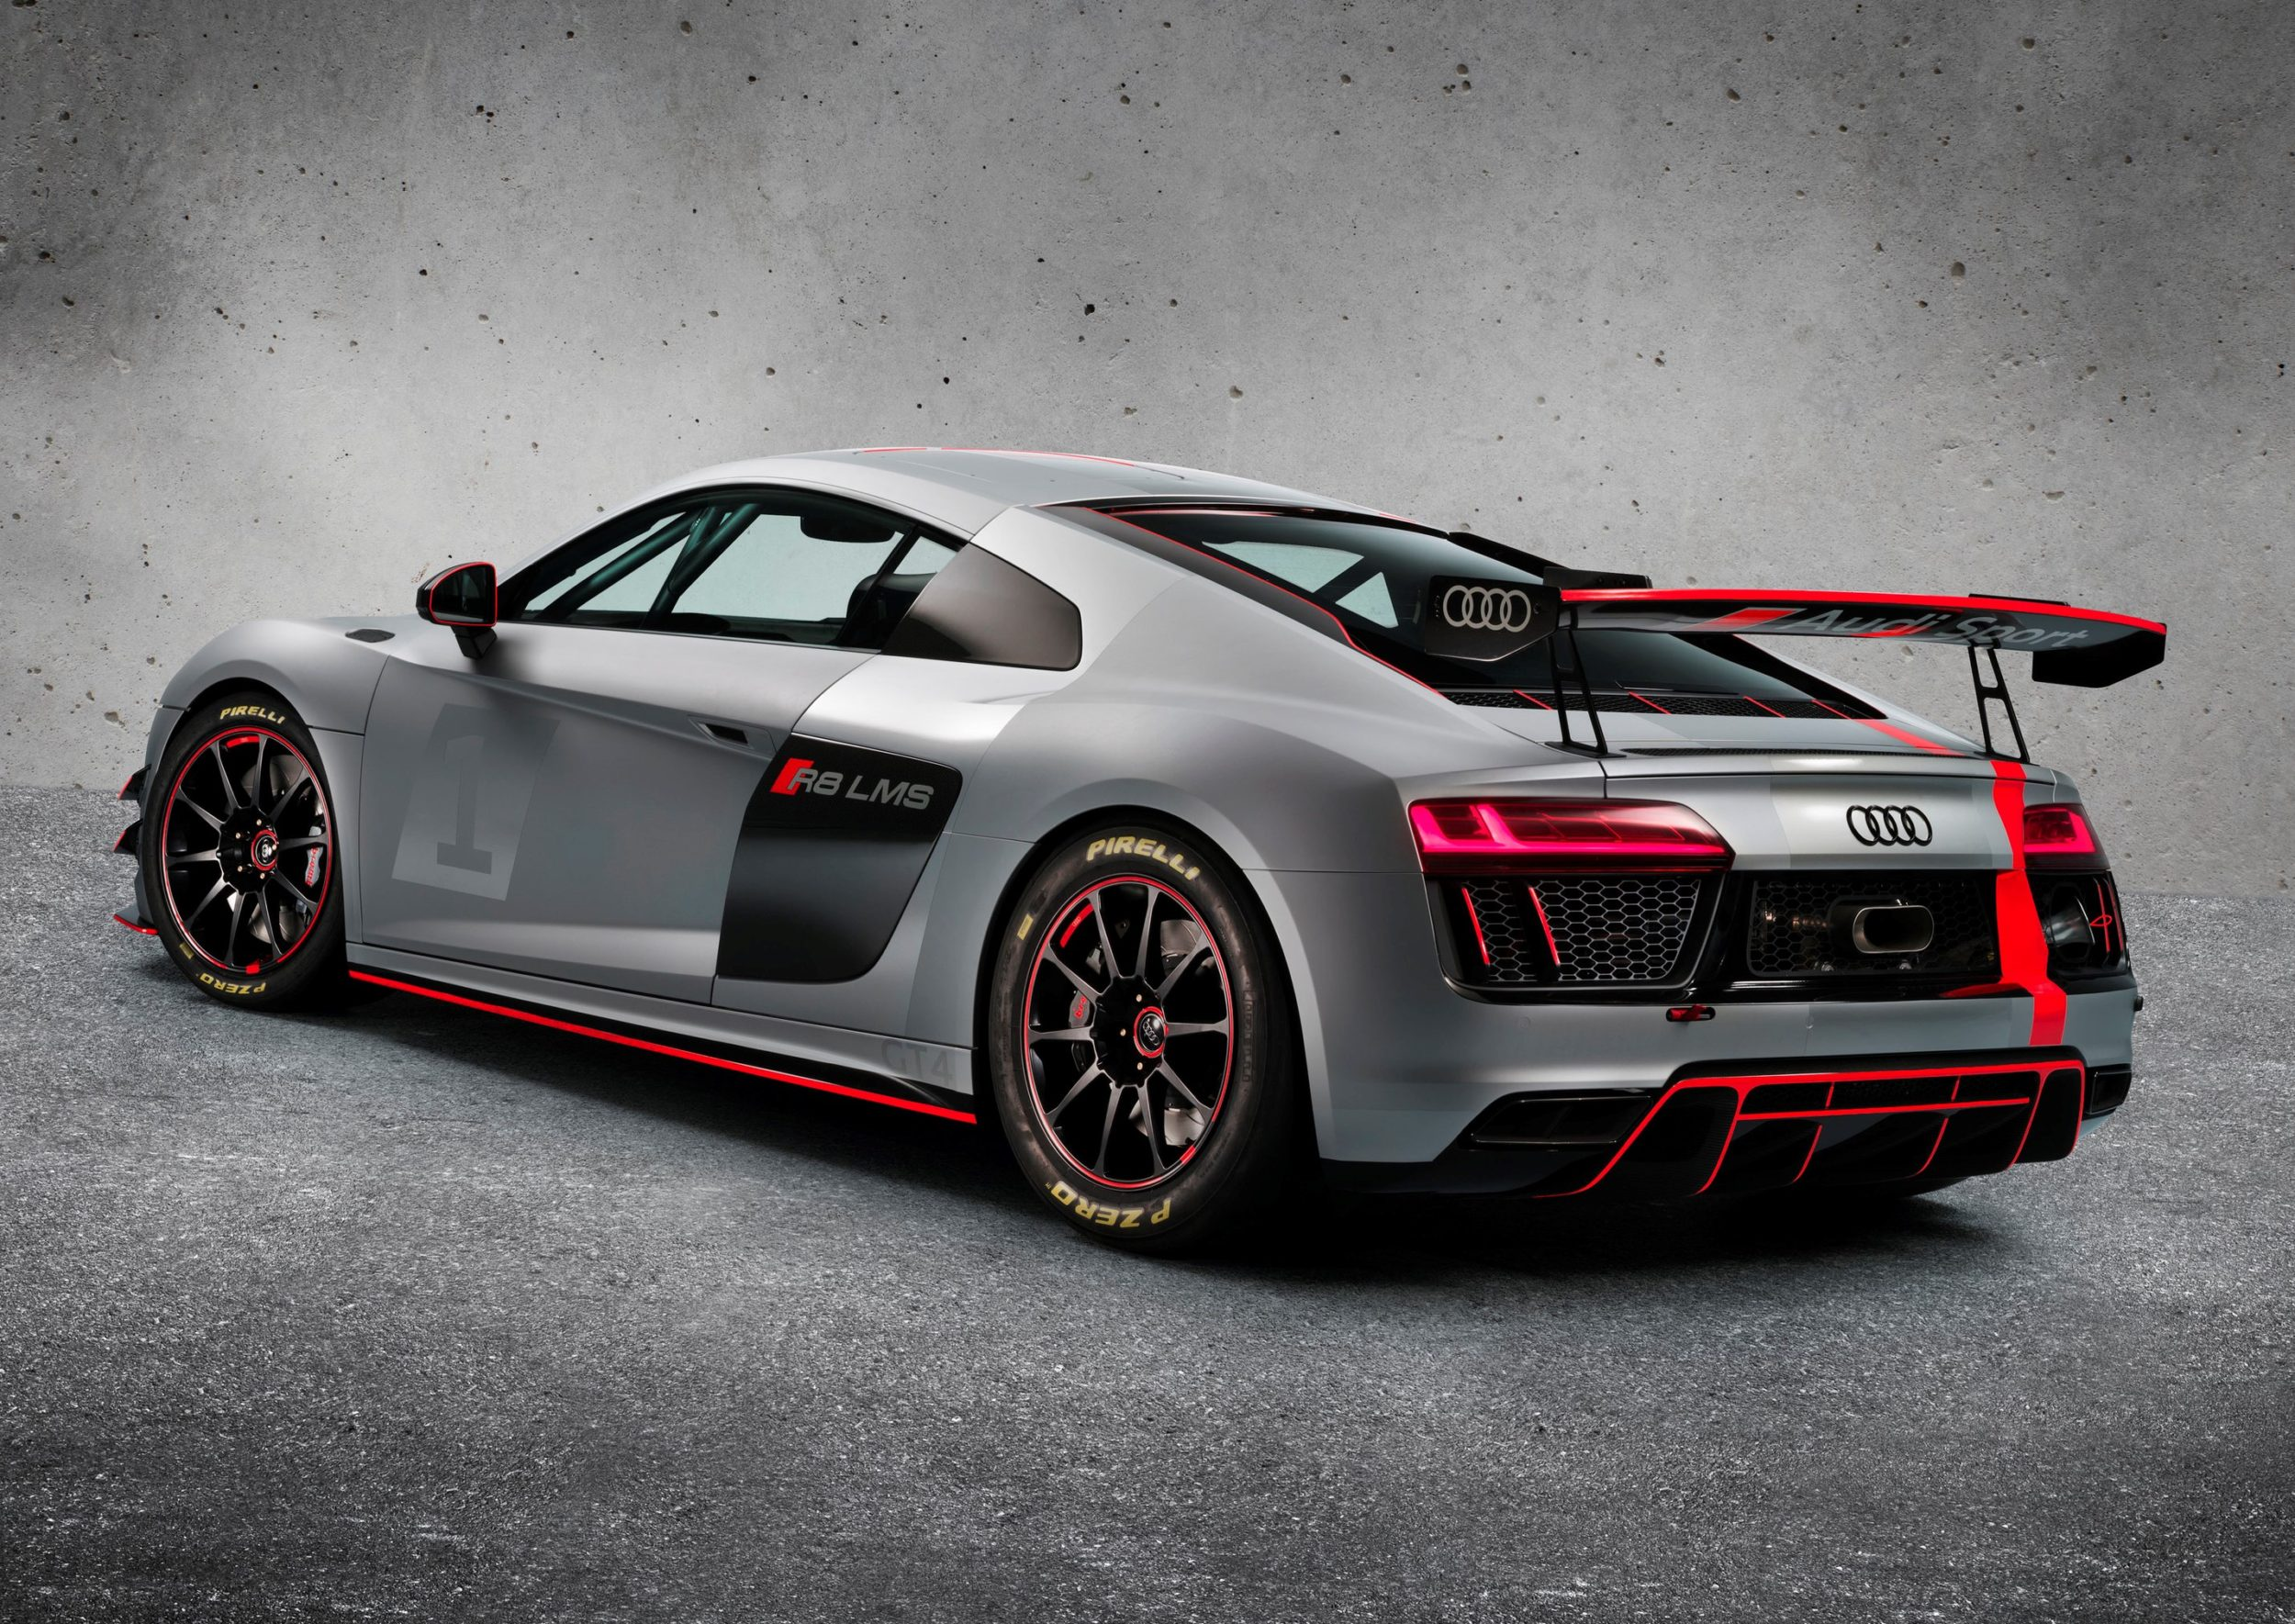 World Premiere Audi R8 Lms Gt4 At New York Auto Show Wheels Ca